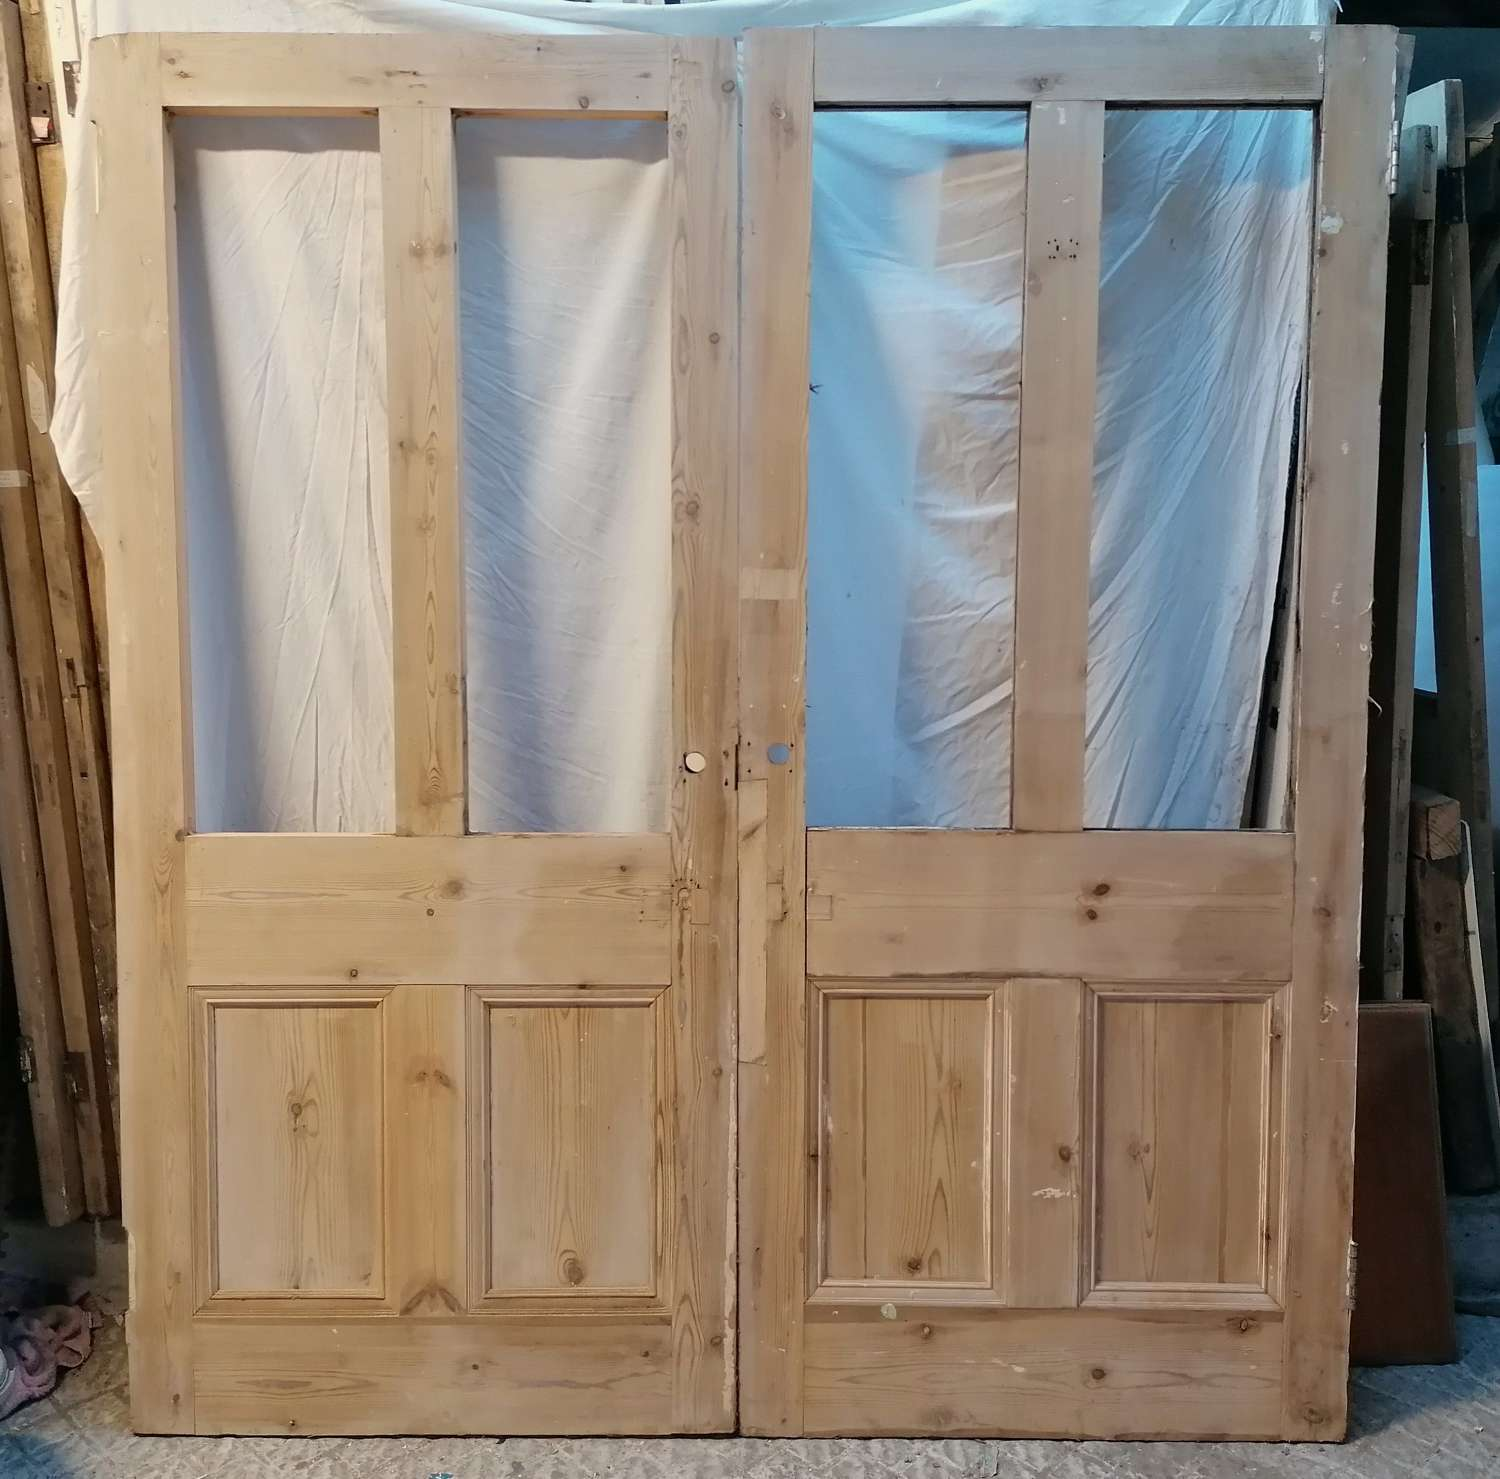 DP0299 A PAIR OF RECLAIMED STRIPPED PINE INTERNAL DOORS FOR GLAZING